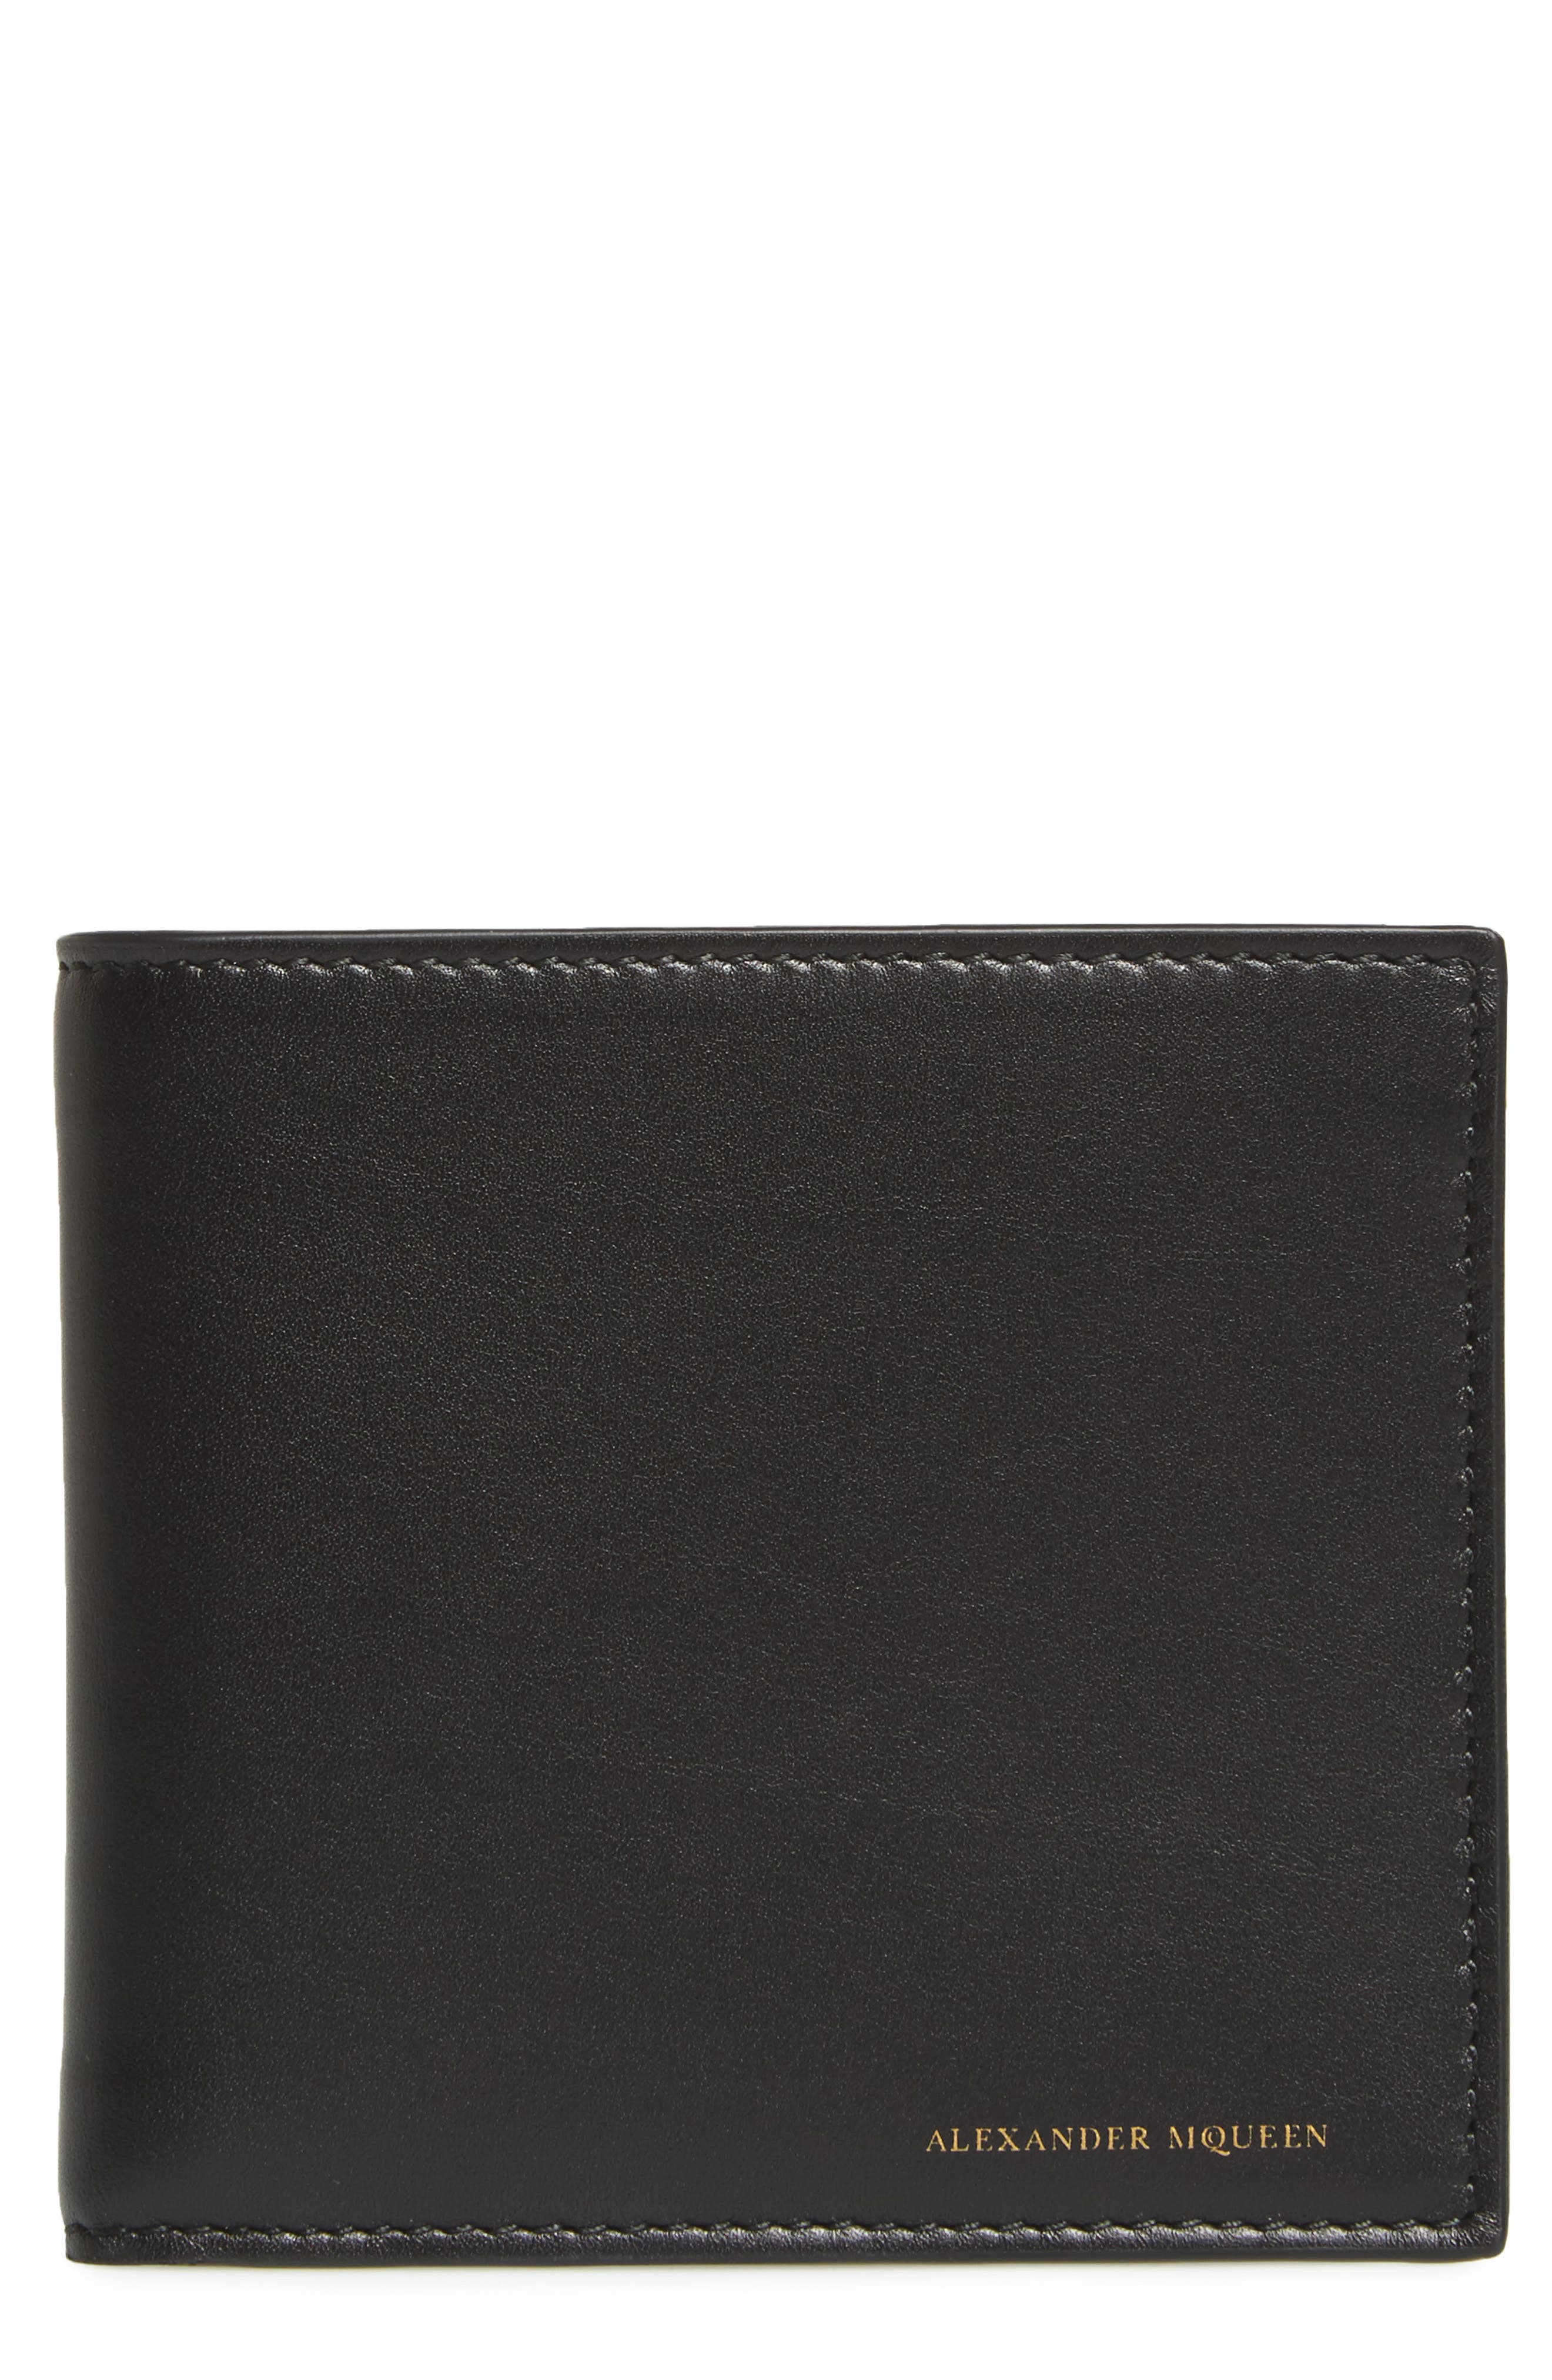 Alexander McQueen Leather Wallet